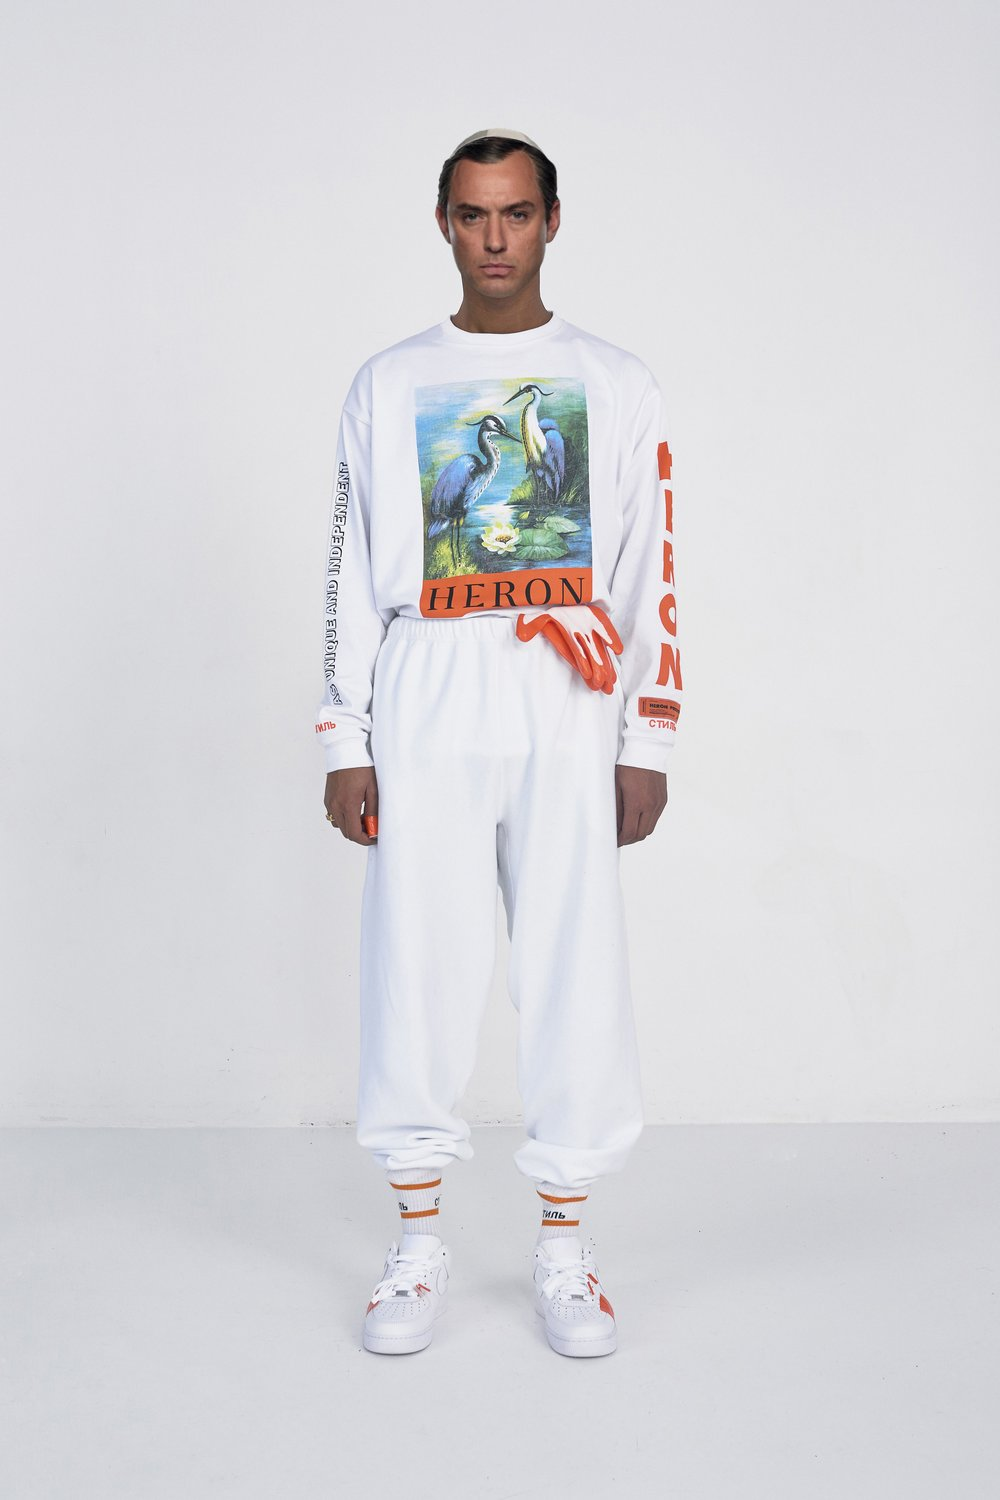 - HERON PRESTON ANNOUNCES GLOBAL RETAIL TOUR FOR HIS DEBUT AW17 COLLECTION The Designer's First Full Collection Will Begin Landing In-Stores Globally On May 20, 2017. Preston Will Move Across Cities To Celebrate The Collection With A Series Of In-Store Events, The First Of Which Will Take Place In Moscow On May 19, 2017.